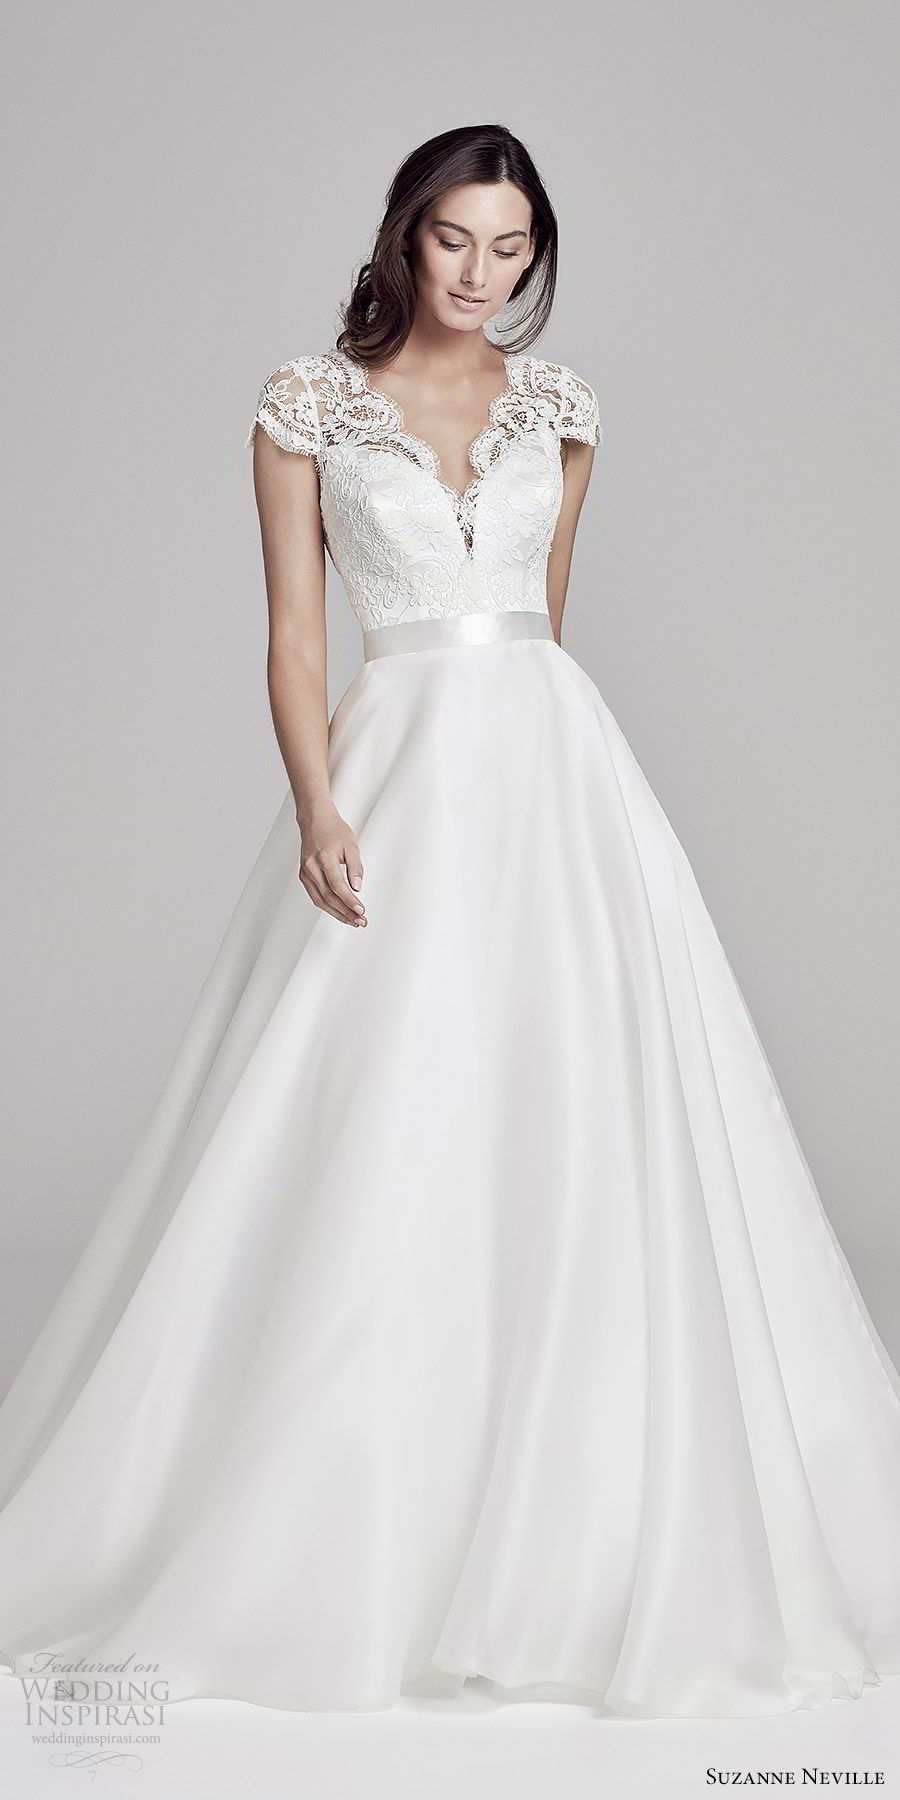 suzanne neville bridal 2019 illusion cap sleeves sheer v neck sweetheart a line wedding dress (alicia) v back chapel train romantic elegant mv